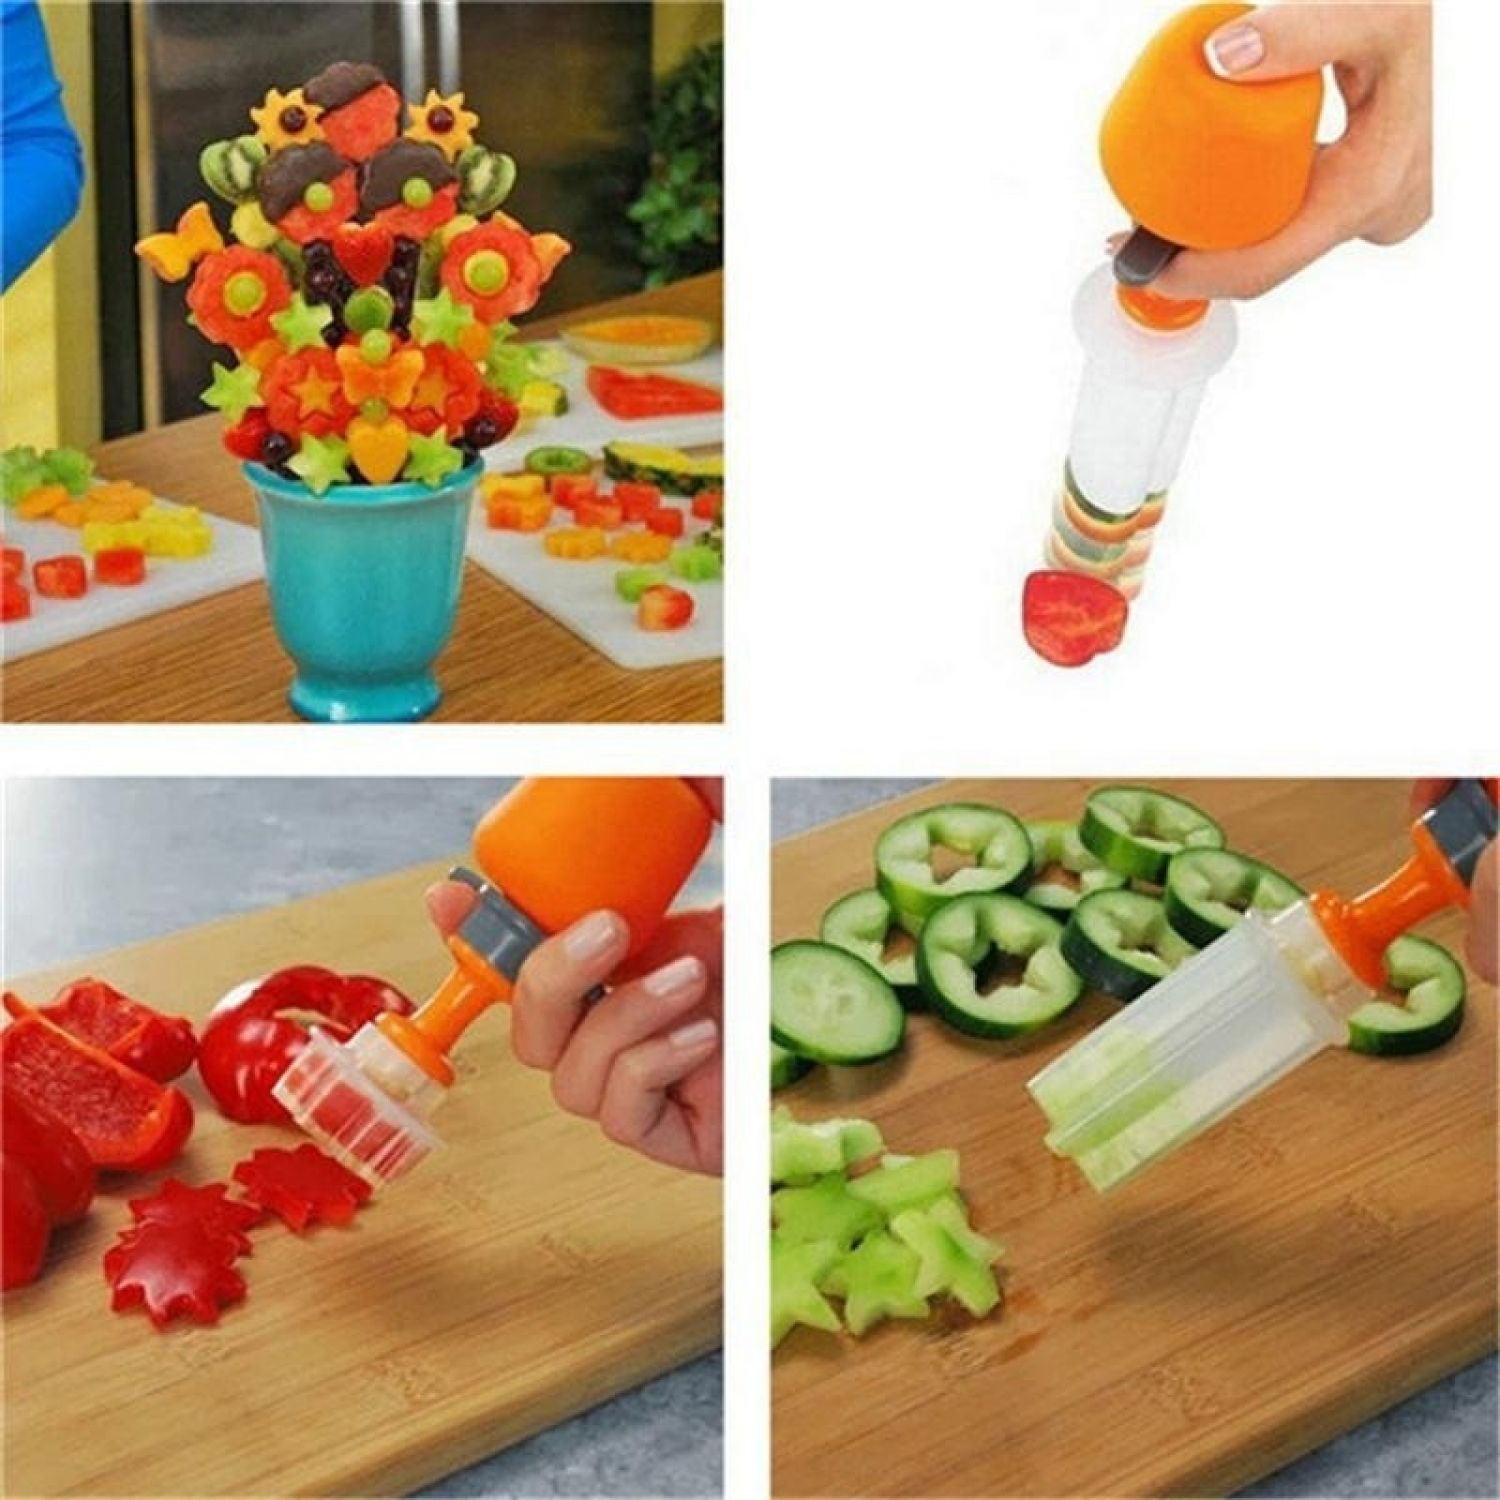 Fruits Carving Vegetables Salad Smoothie Cake Tools Kitchen Cooking Accessories